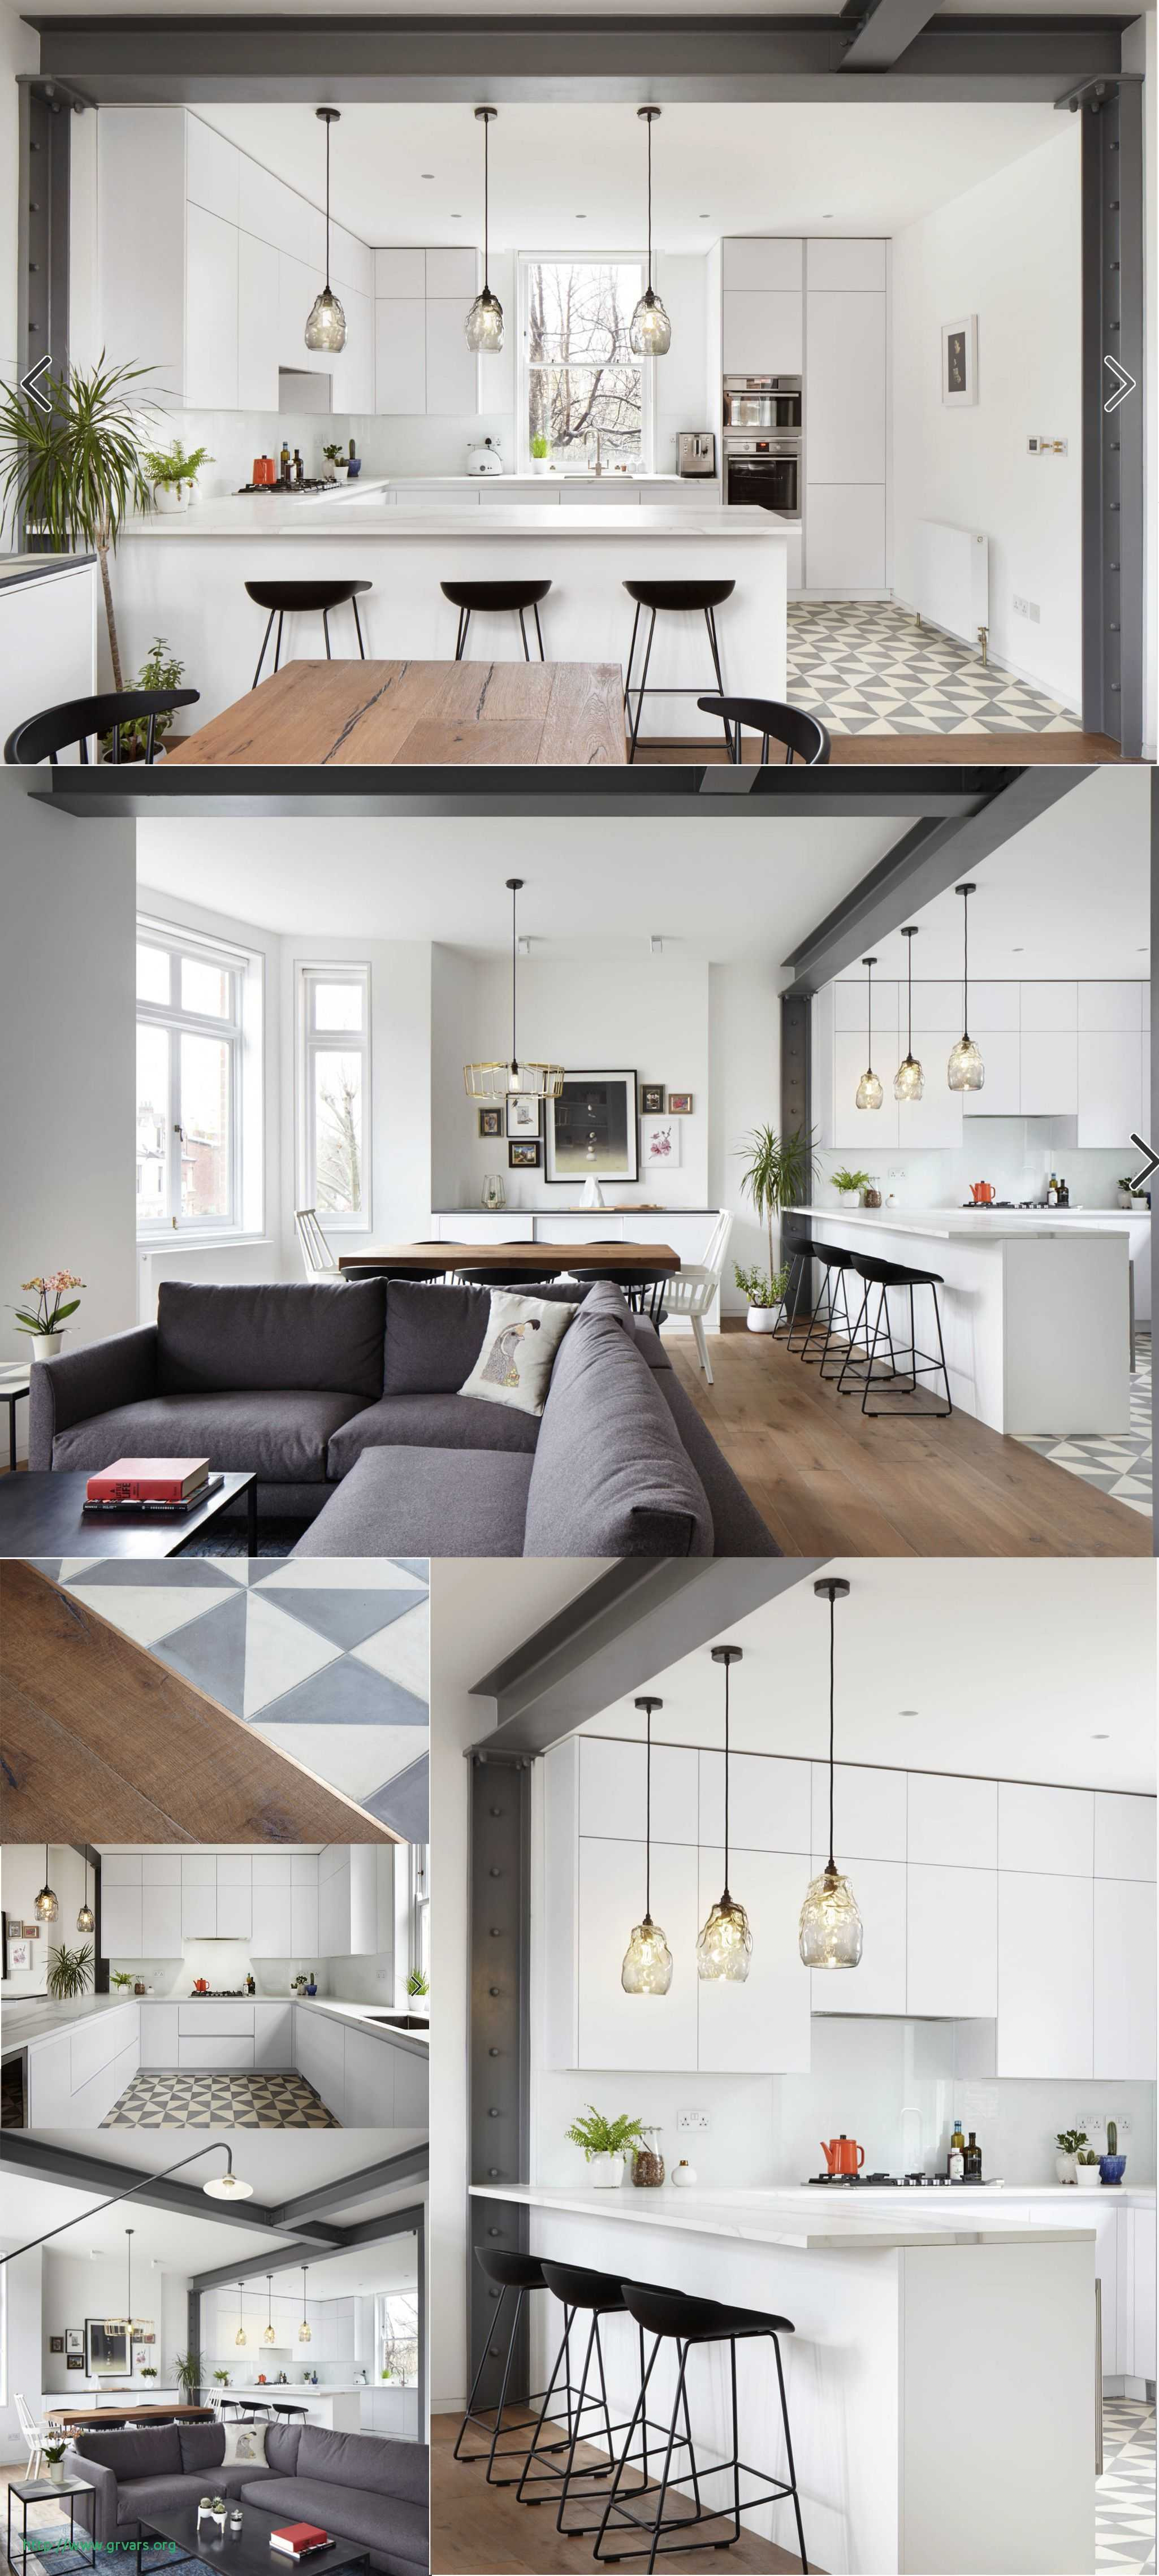 x pression hardwood floors of 17 impressionnant upo flooring ideas blog in all white contemporary kitchen in open plan layout mix of floor types glenshaw mansions